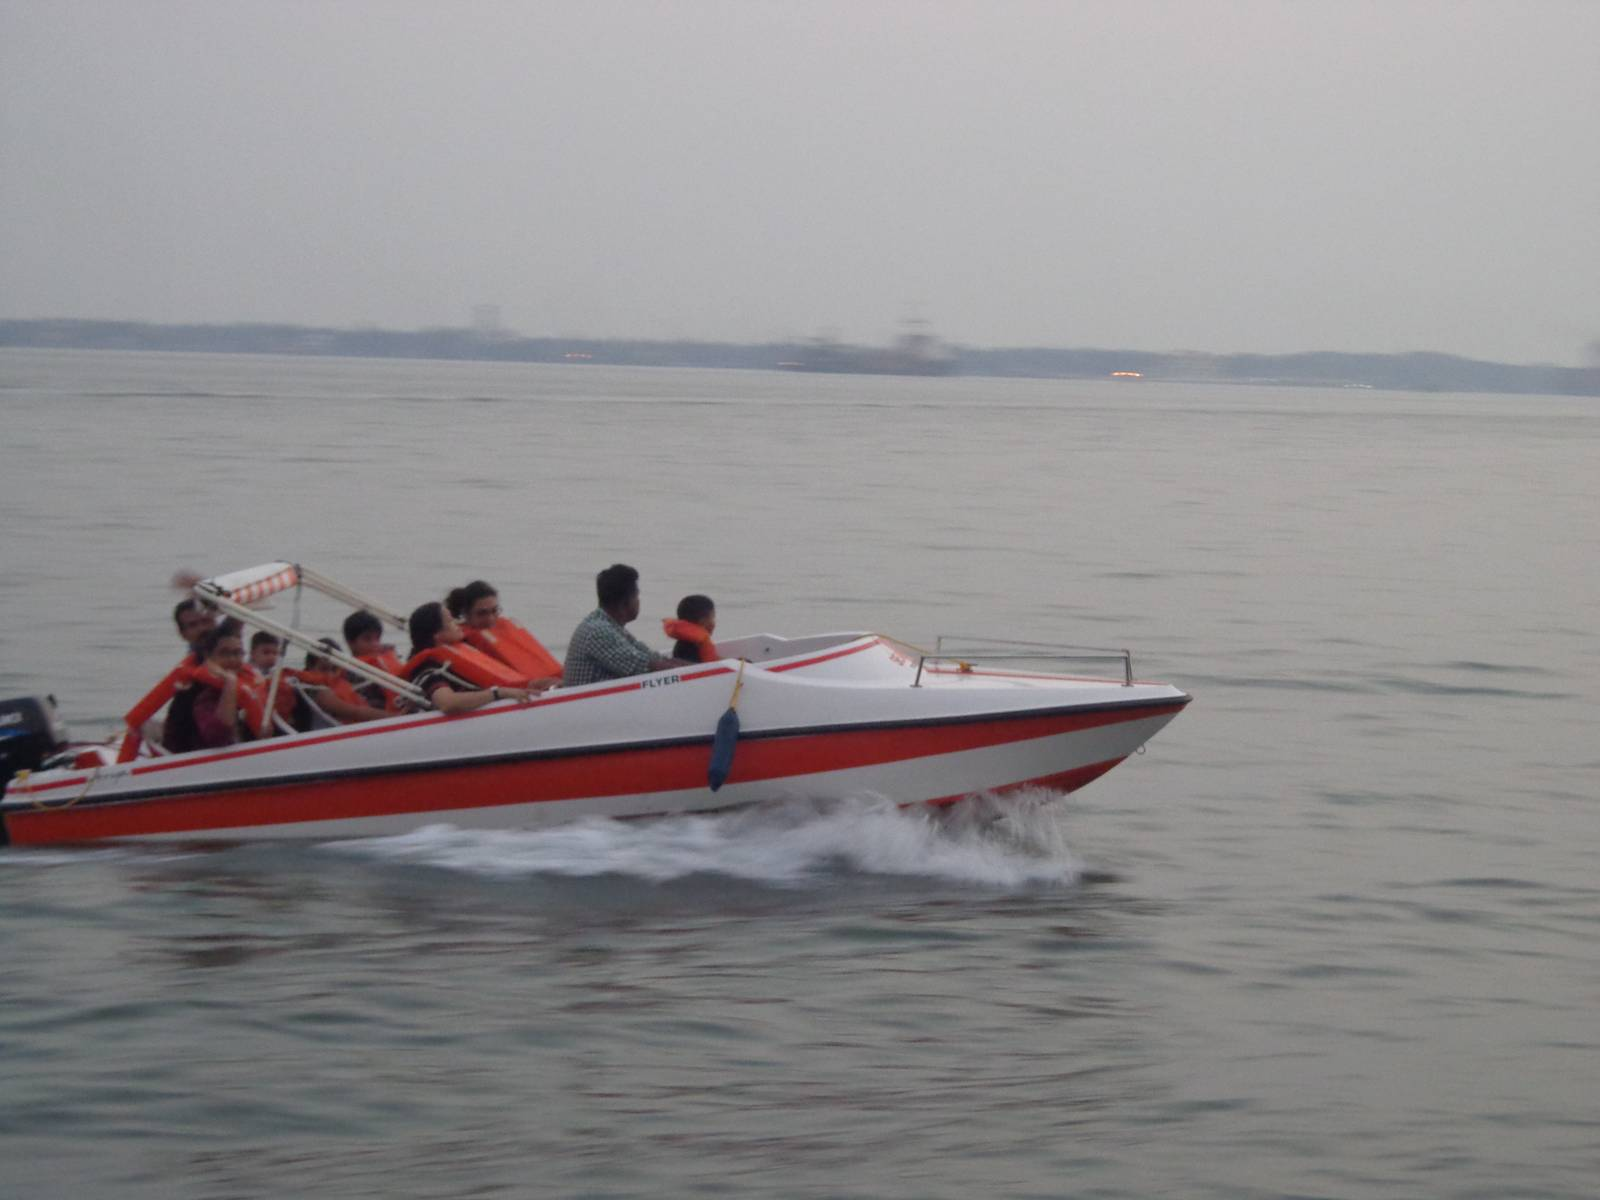 A speedboat zoomed past our slow ferry.